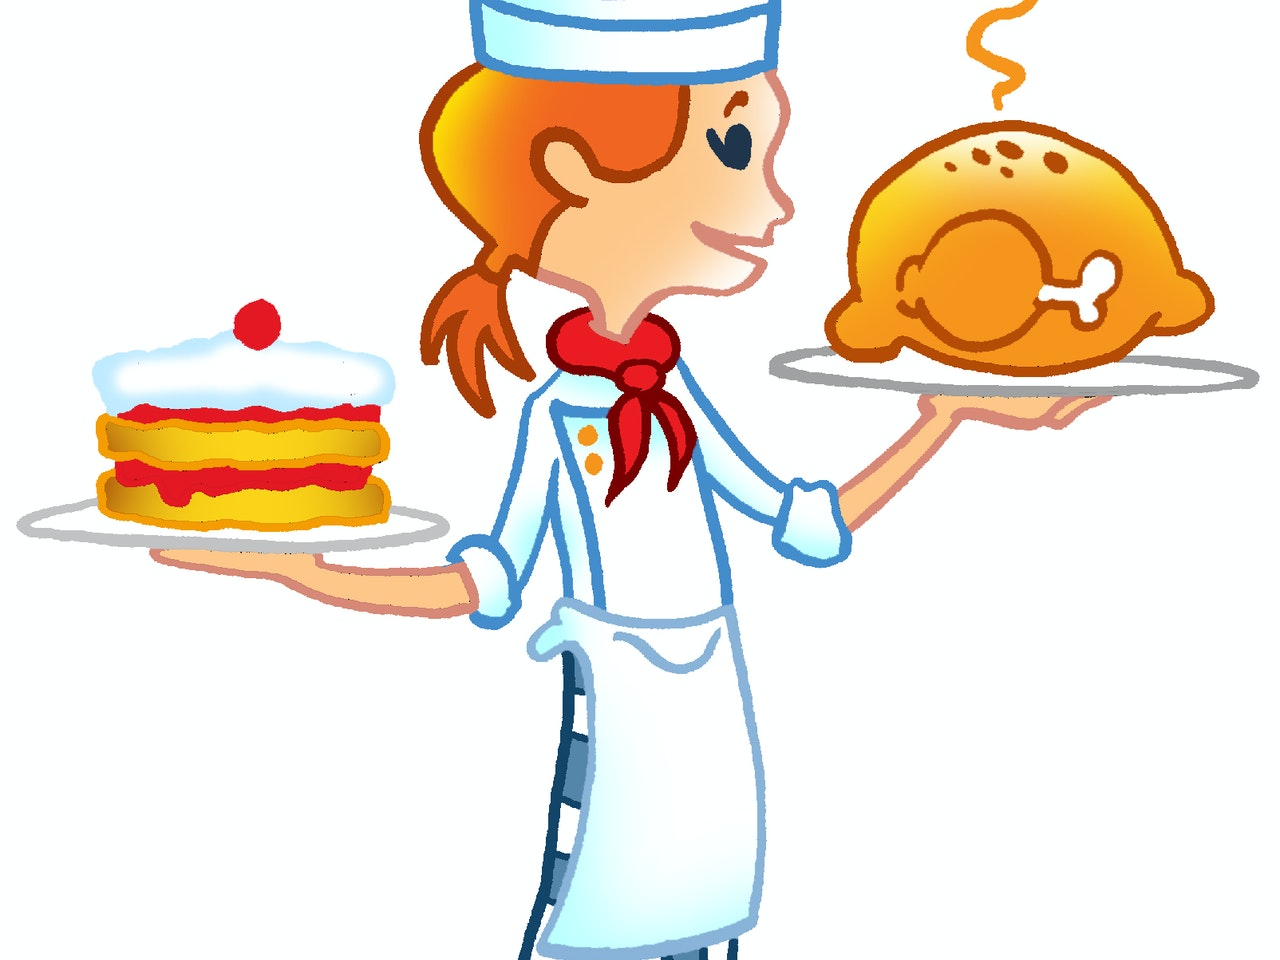 baking cooking  roasting food preparation teen girl chef illustration animation  humorous comical colourful graphic cartoon manga anime publishing